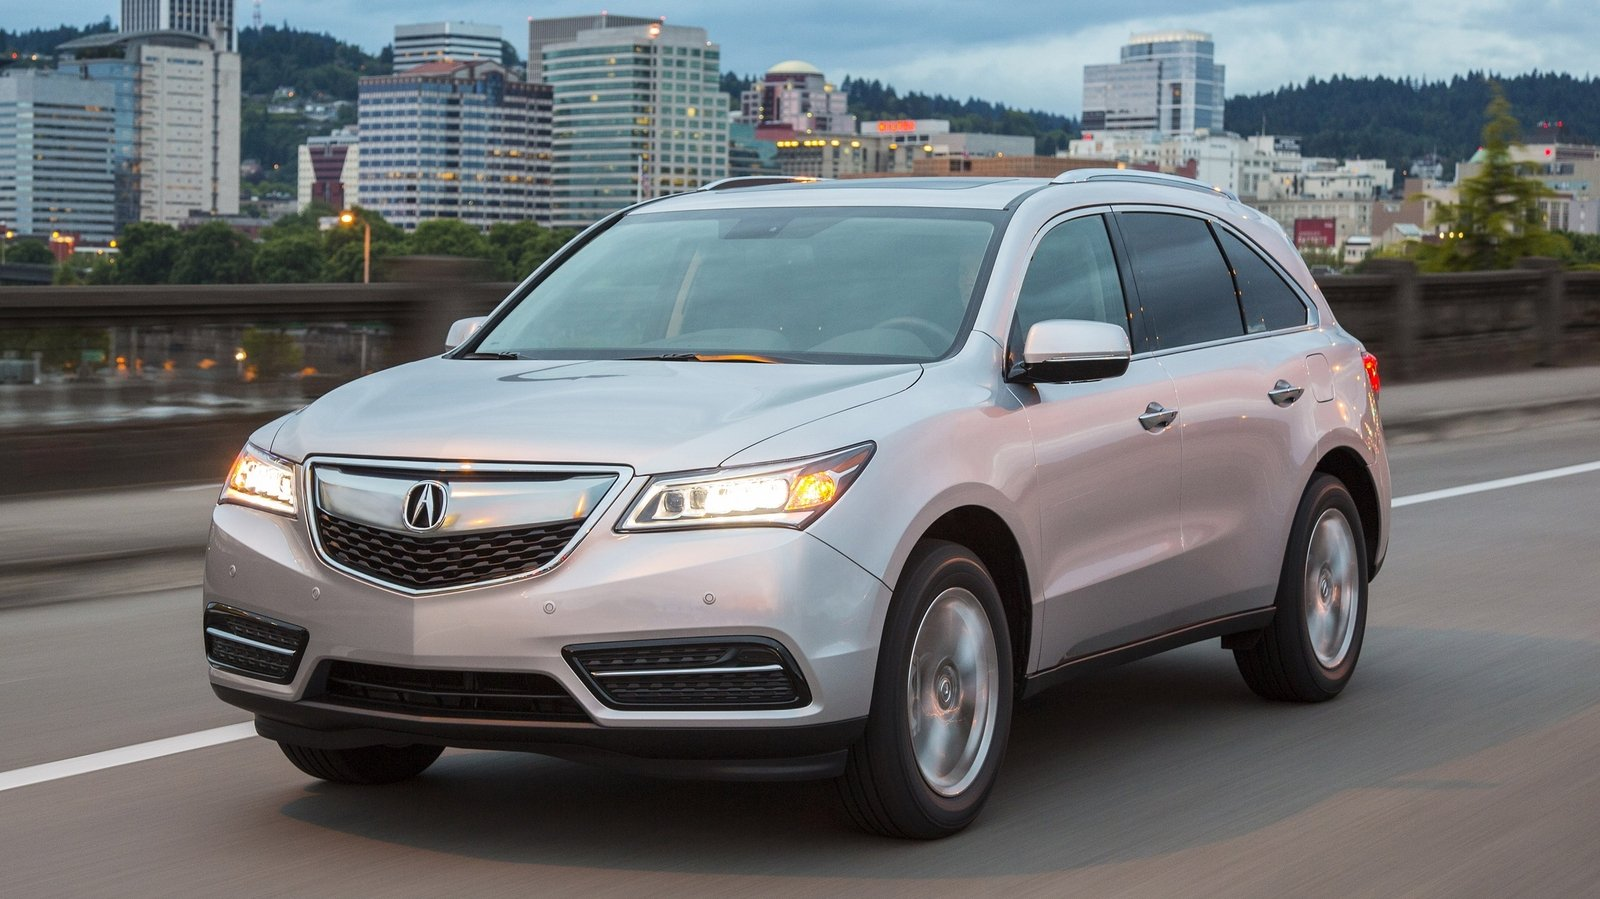 2014 2016 acura mdx picture 615134 car review top speed. Black Bedroom Furniture Sets. Home Design Ideas